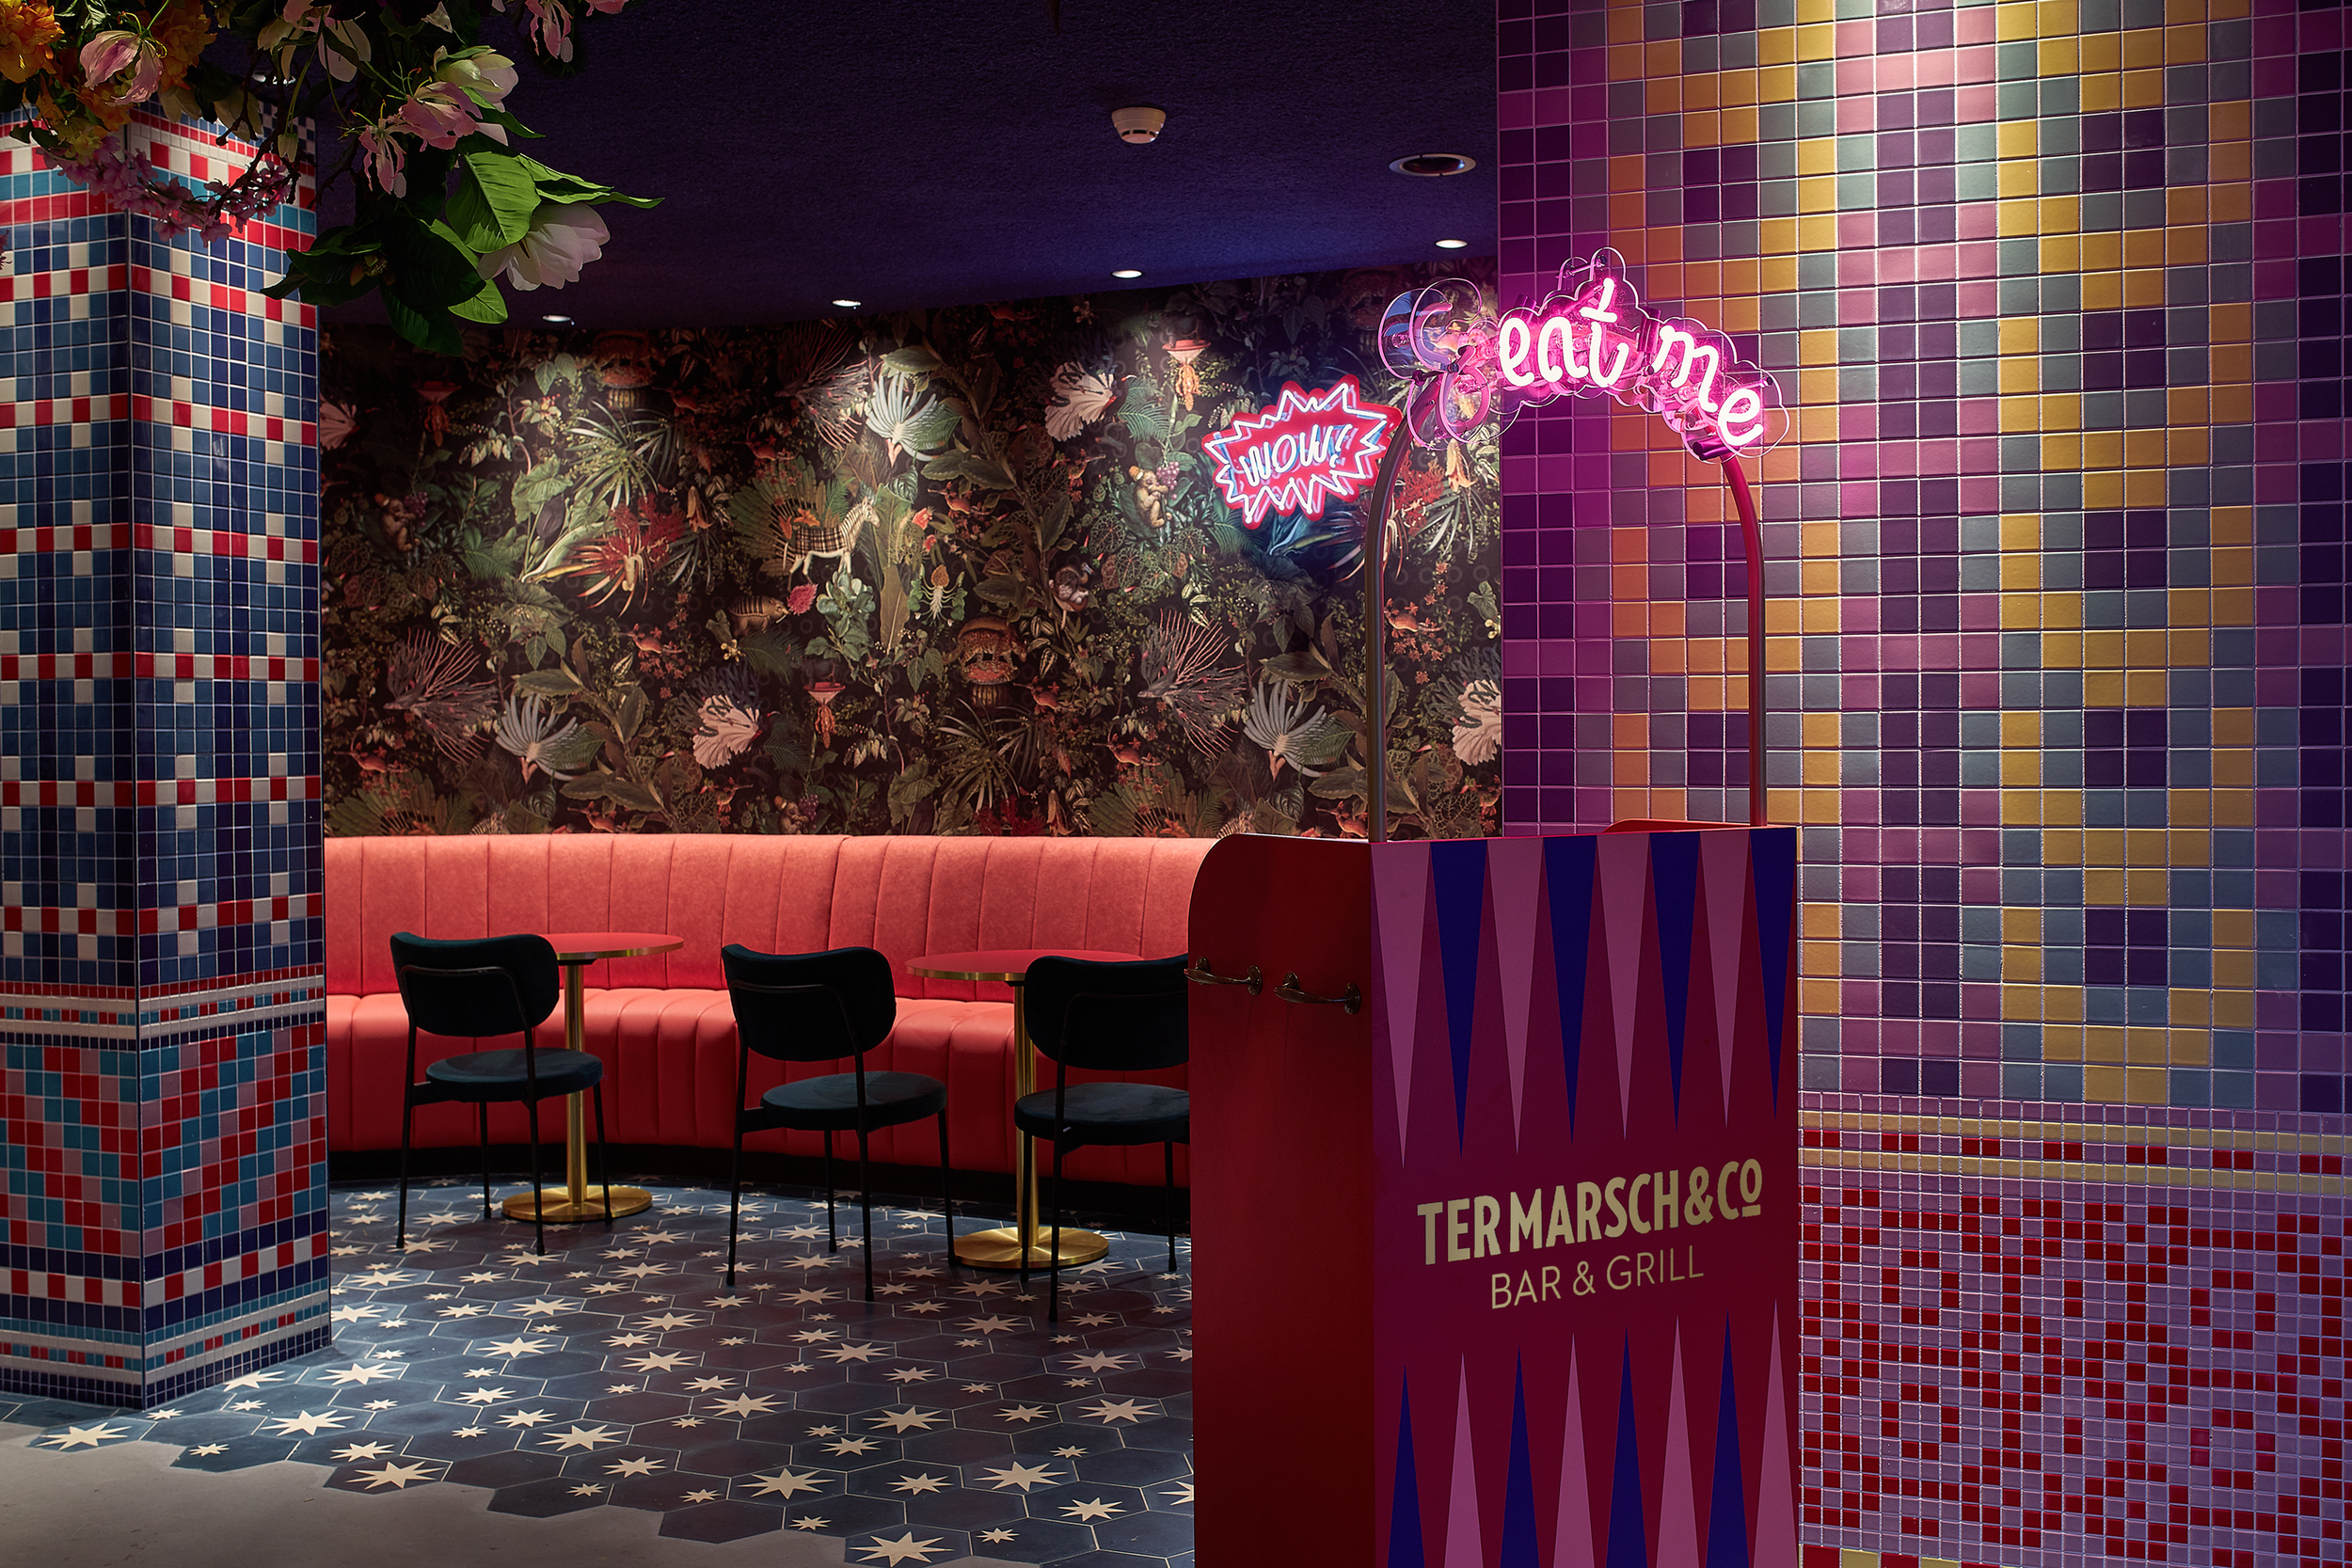 Ter Marsch & Co Amsterdam jaw dropping interior - interior design - crazy look & feel 8.png